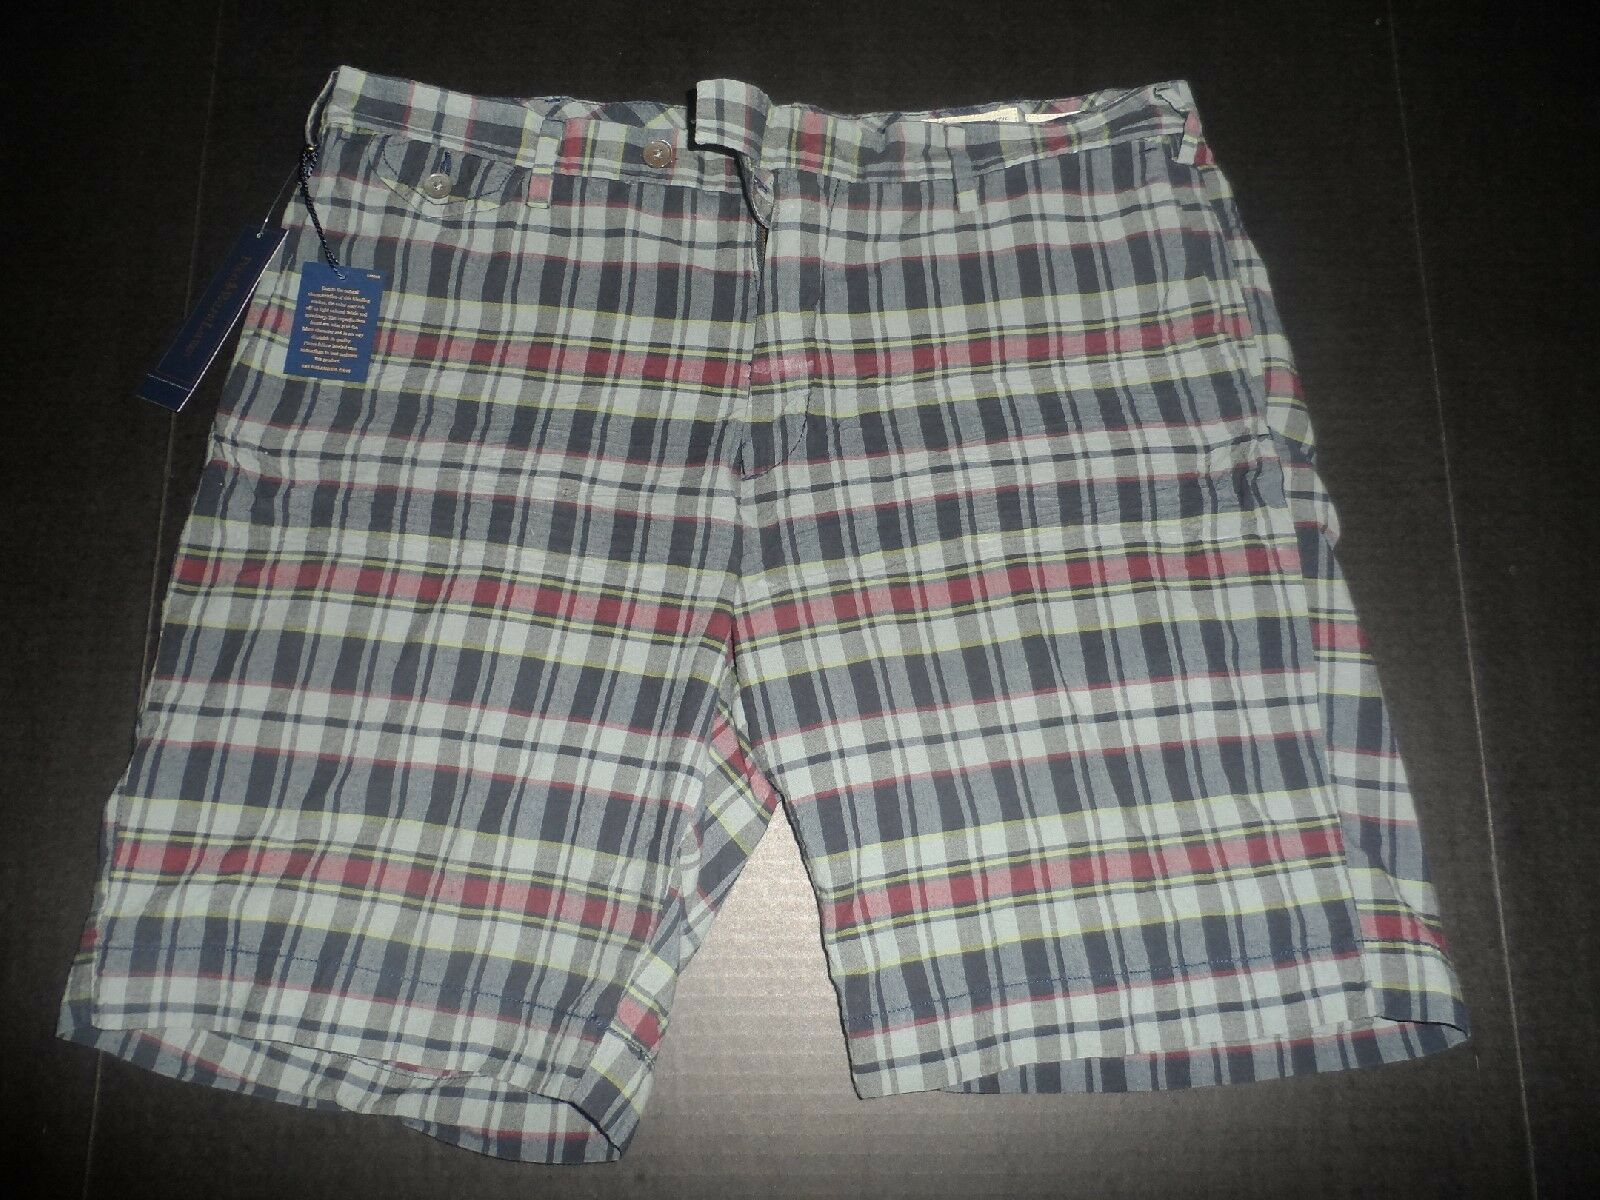 NWT Mens Ralph Lauren shorts Size  34 Style  5856793 ADCR color  bluee